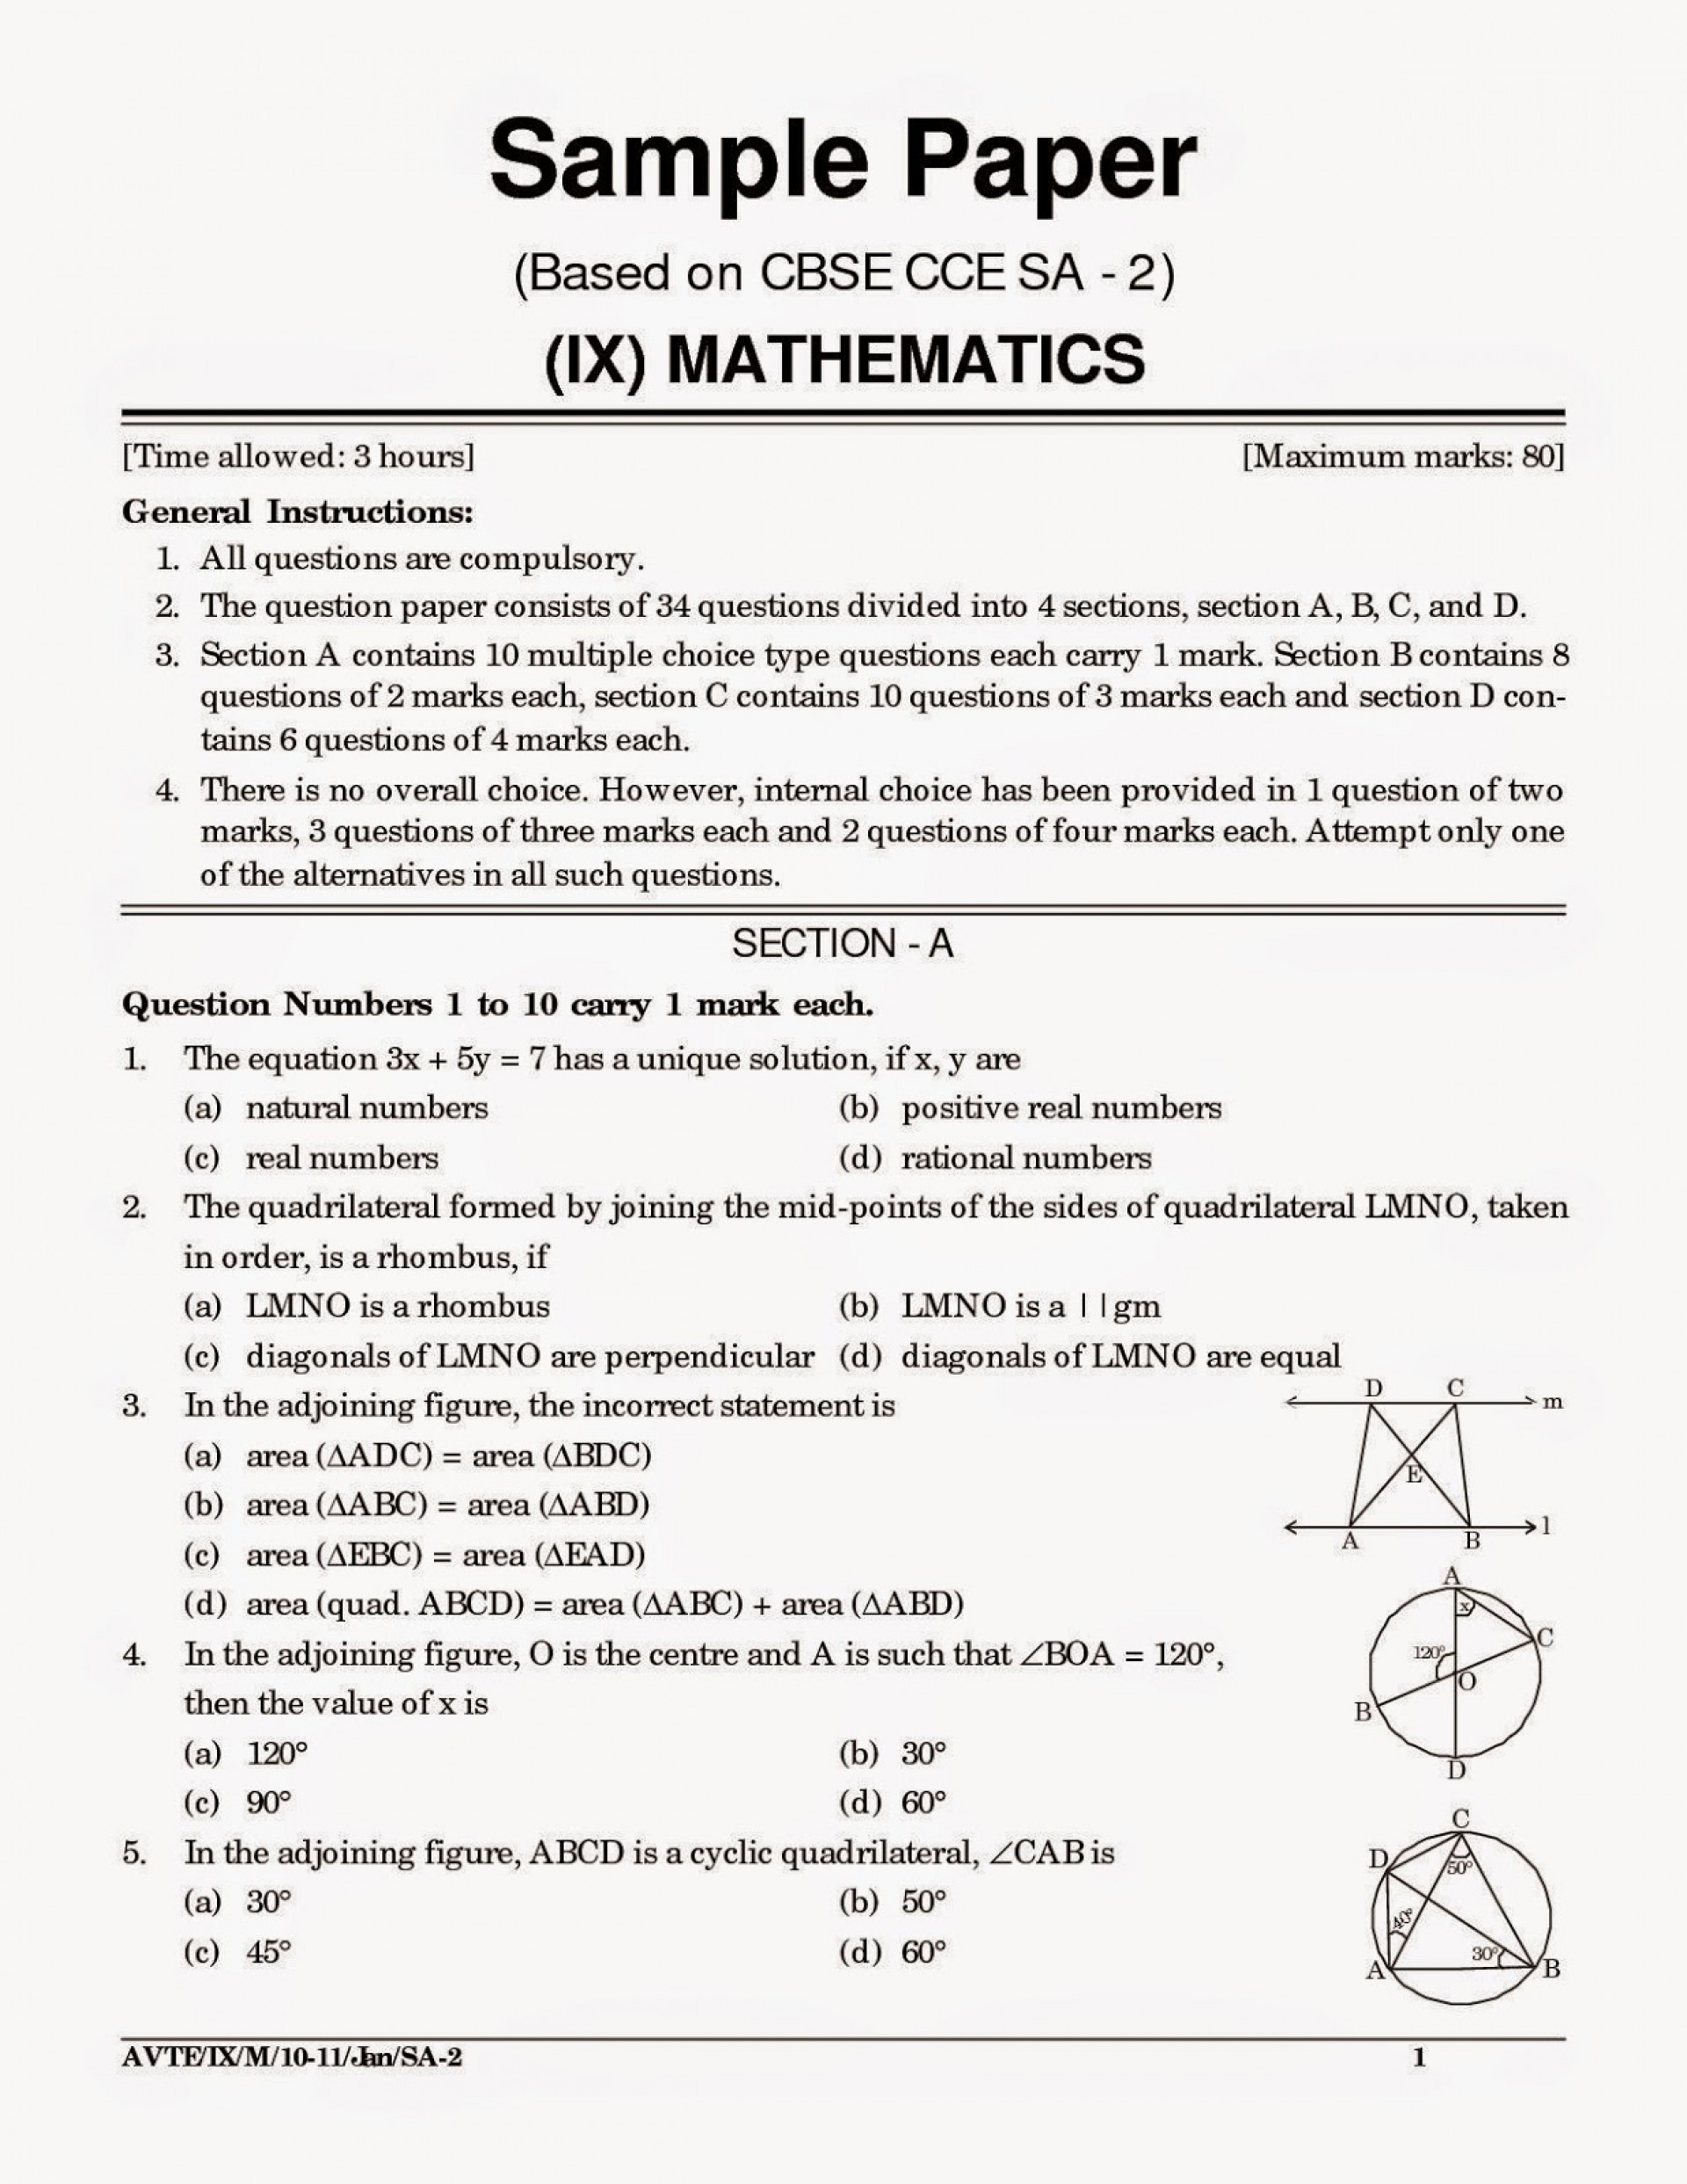 019 Sample Argumentative Essay Cbse20sample20papers20for20class201020mathematics20and20science Jpg Awful Outline Pdf Mla Format Grade 6 1920